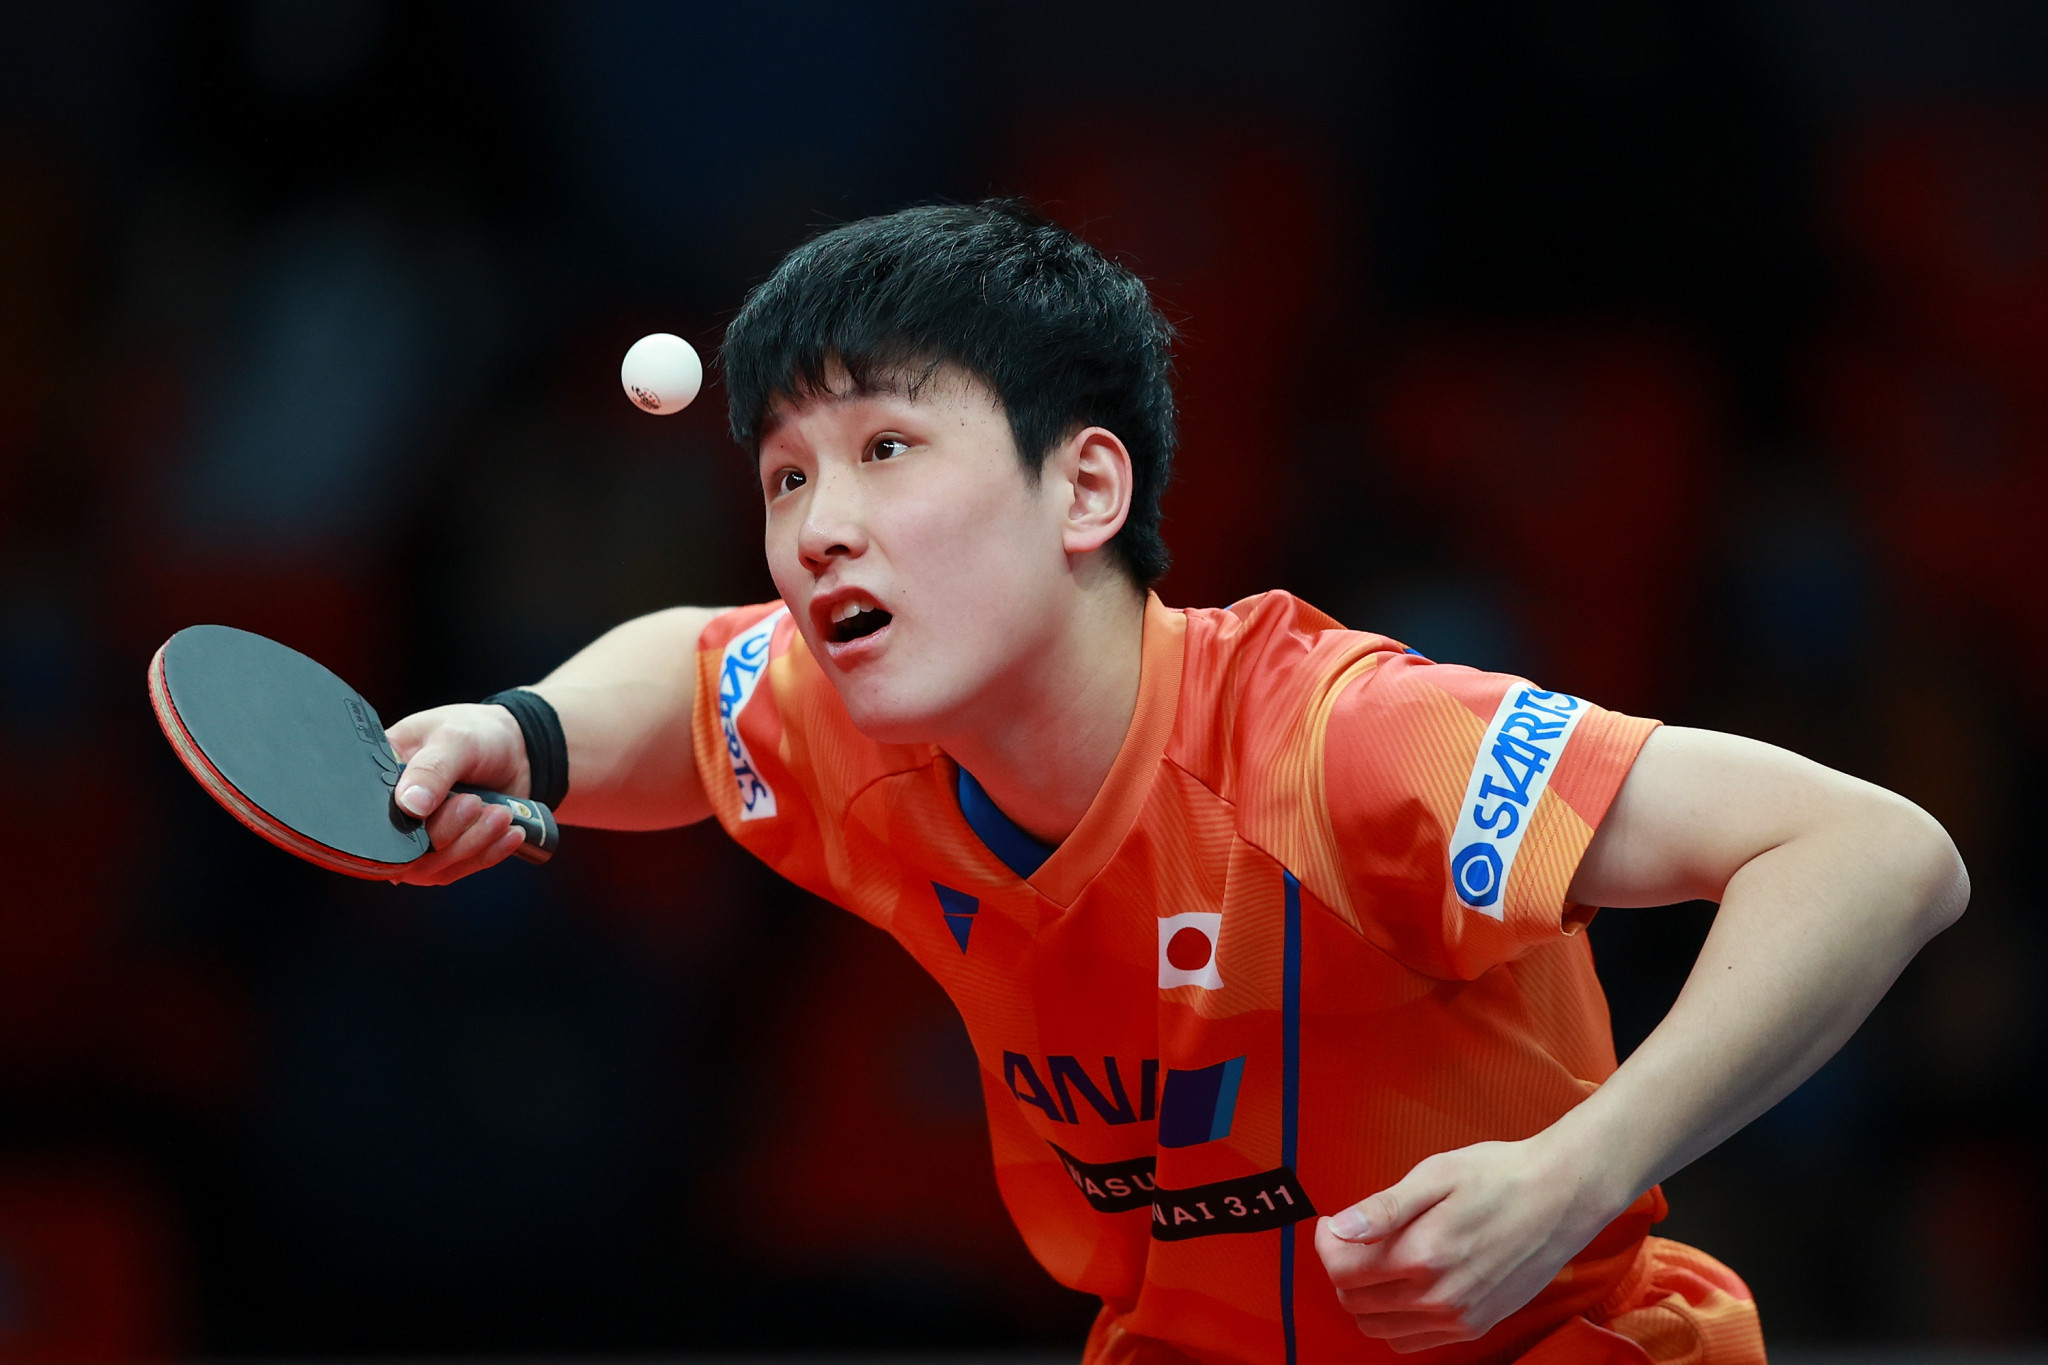 Harimoto and Filus to meet in WTT Star Contender Doha men's singles final